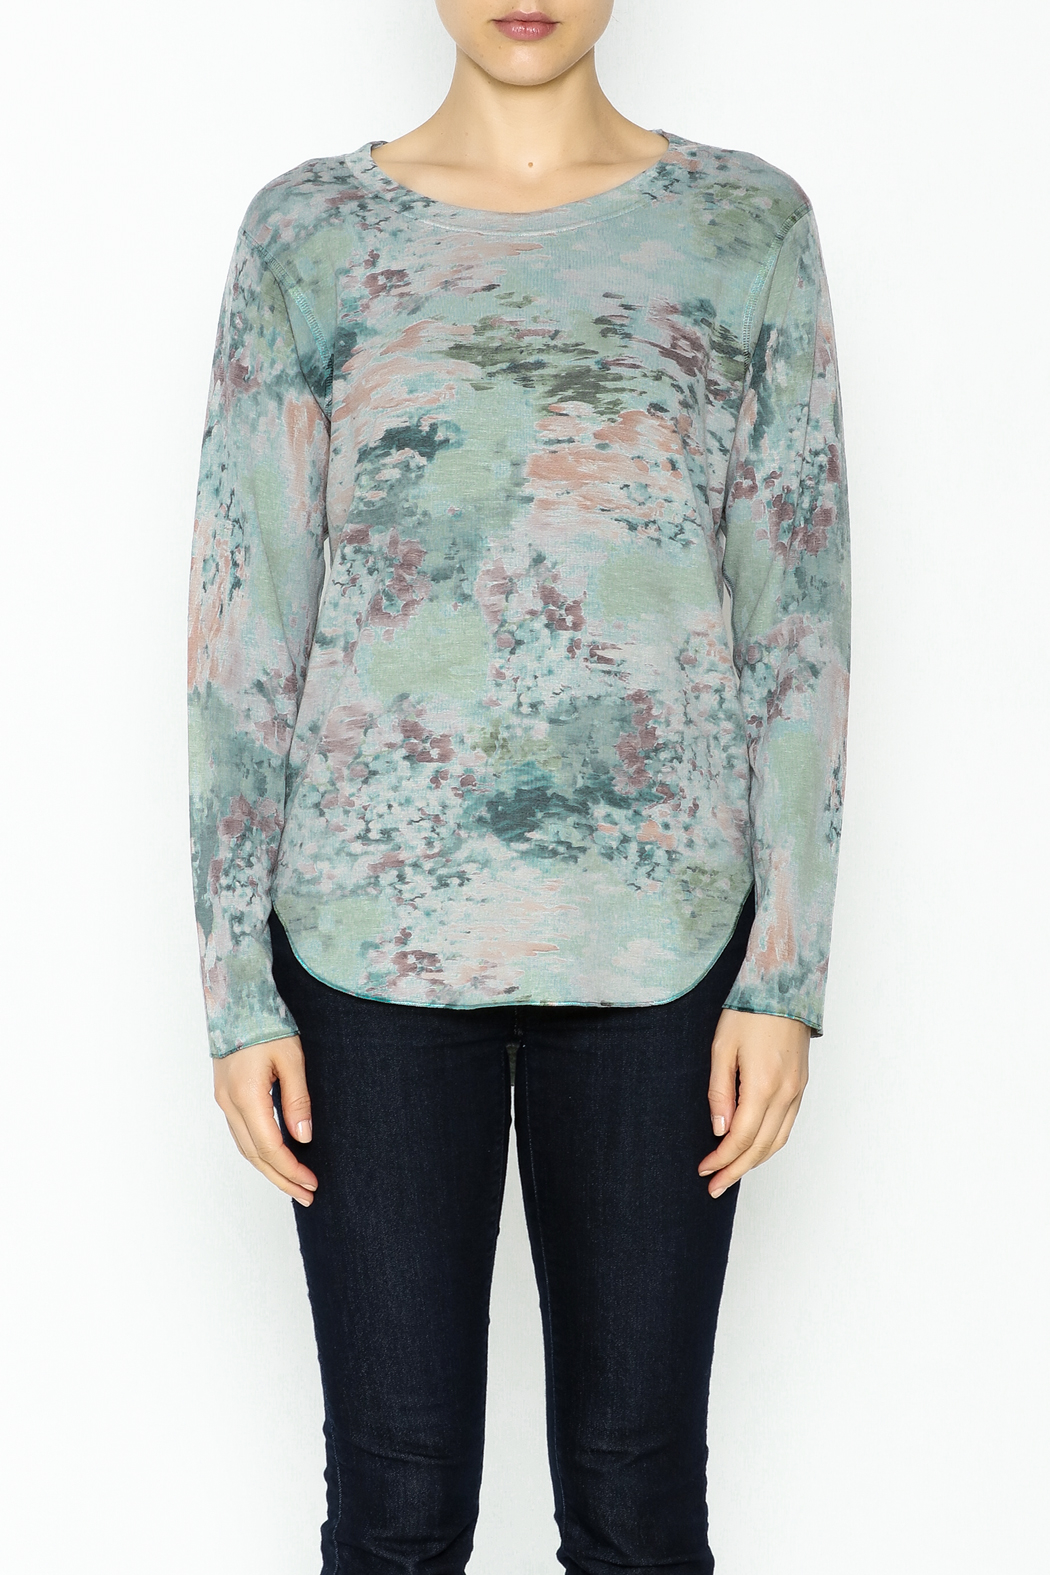 Nally & Millie Monet Print Jersey Top - Front Full Image